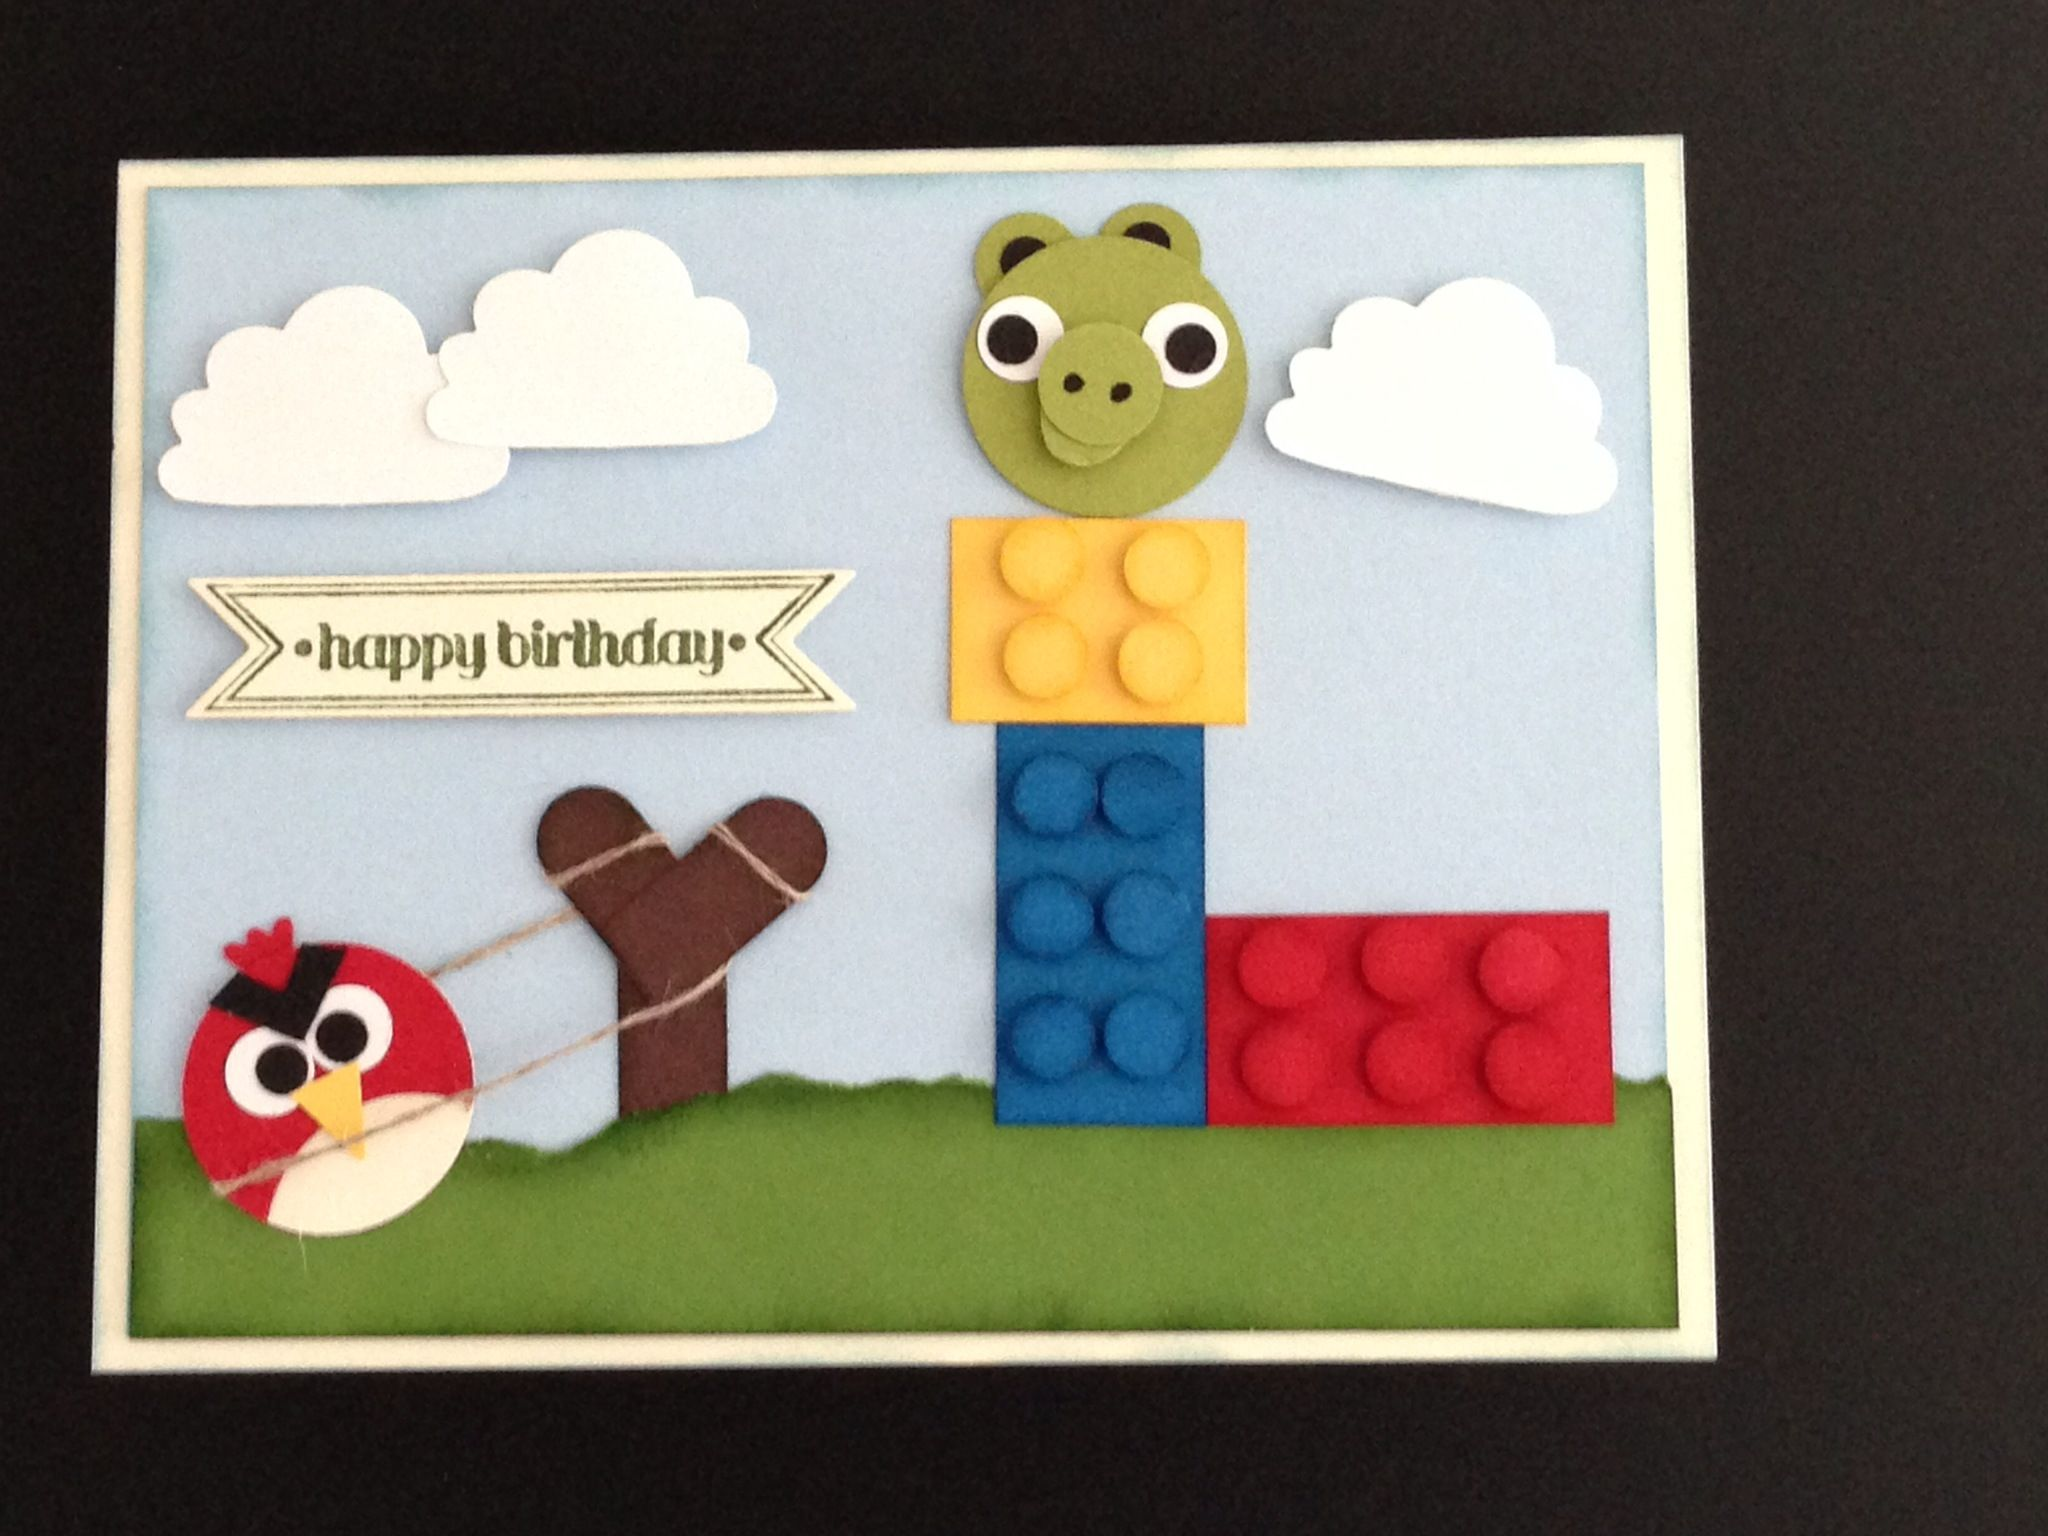 Angry bird lego card made this for my nephews 7th birthday card made this for my nephews 7th birthday m4hsunfo